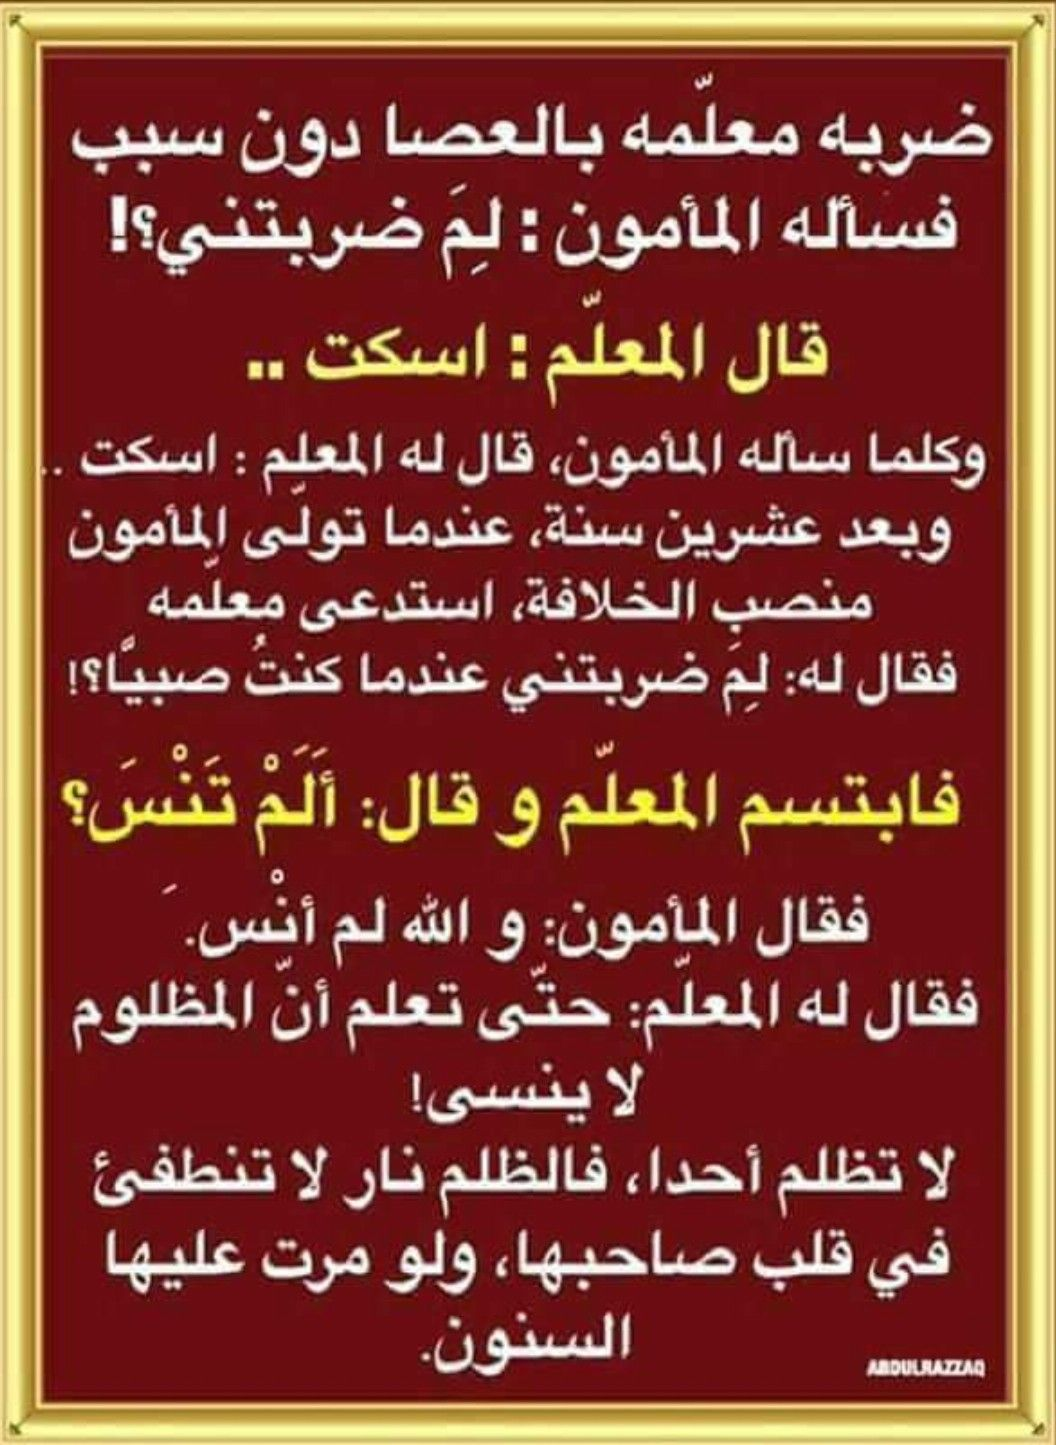 Pin By Naminas On حكم Arabic Quotes Cool Words Life Words